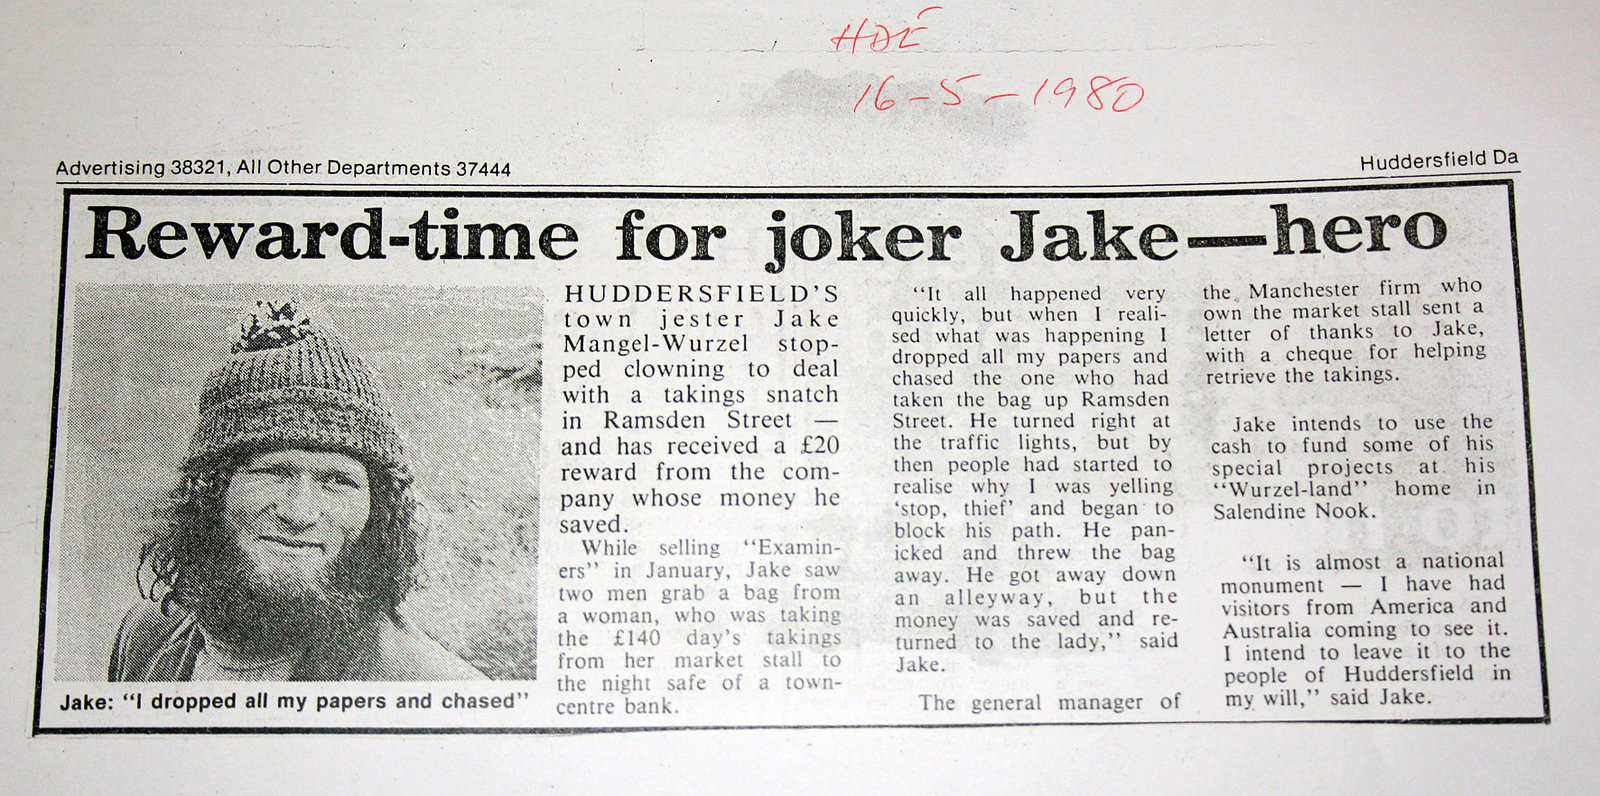 Newspaper Article 1980, Huddersfield Daily Examiner